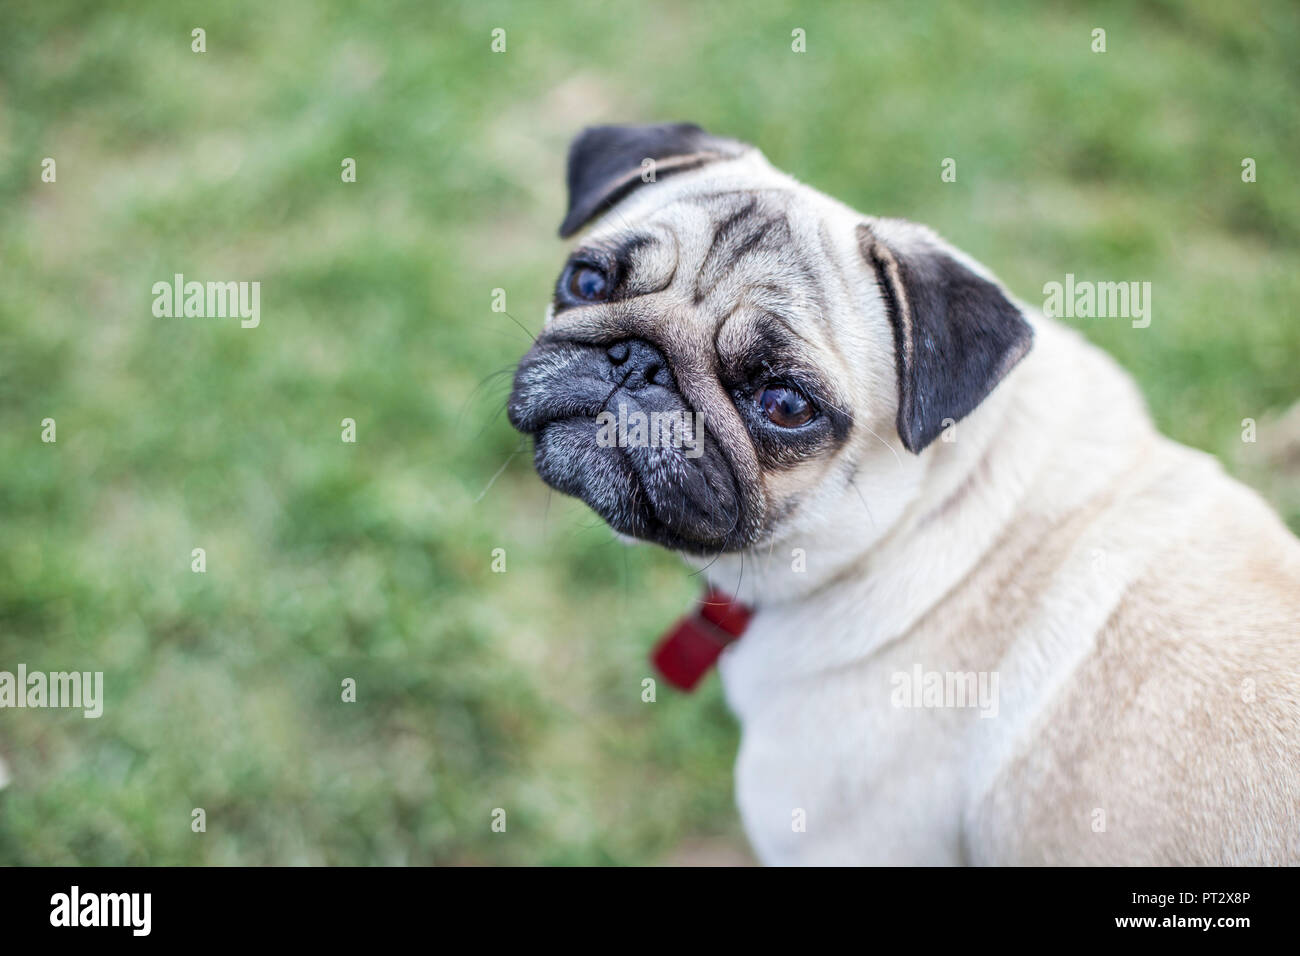 A pug sitting in a meadow and looking into the camera - Stock Image